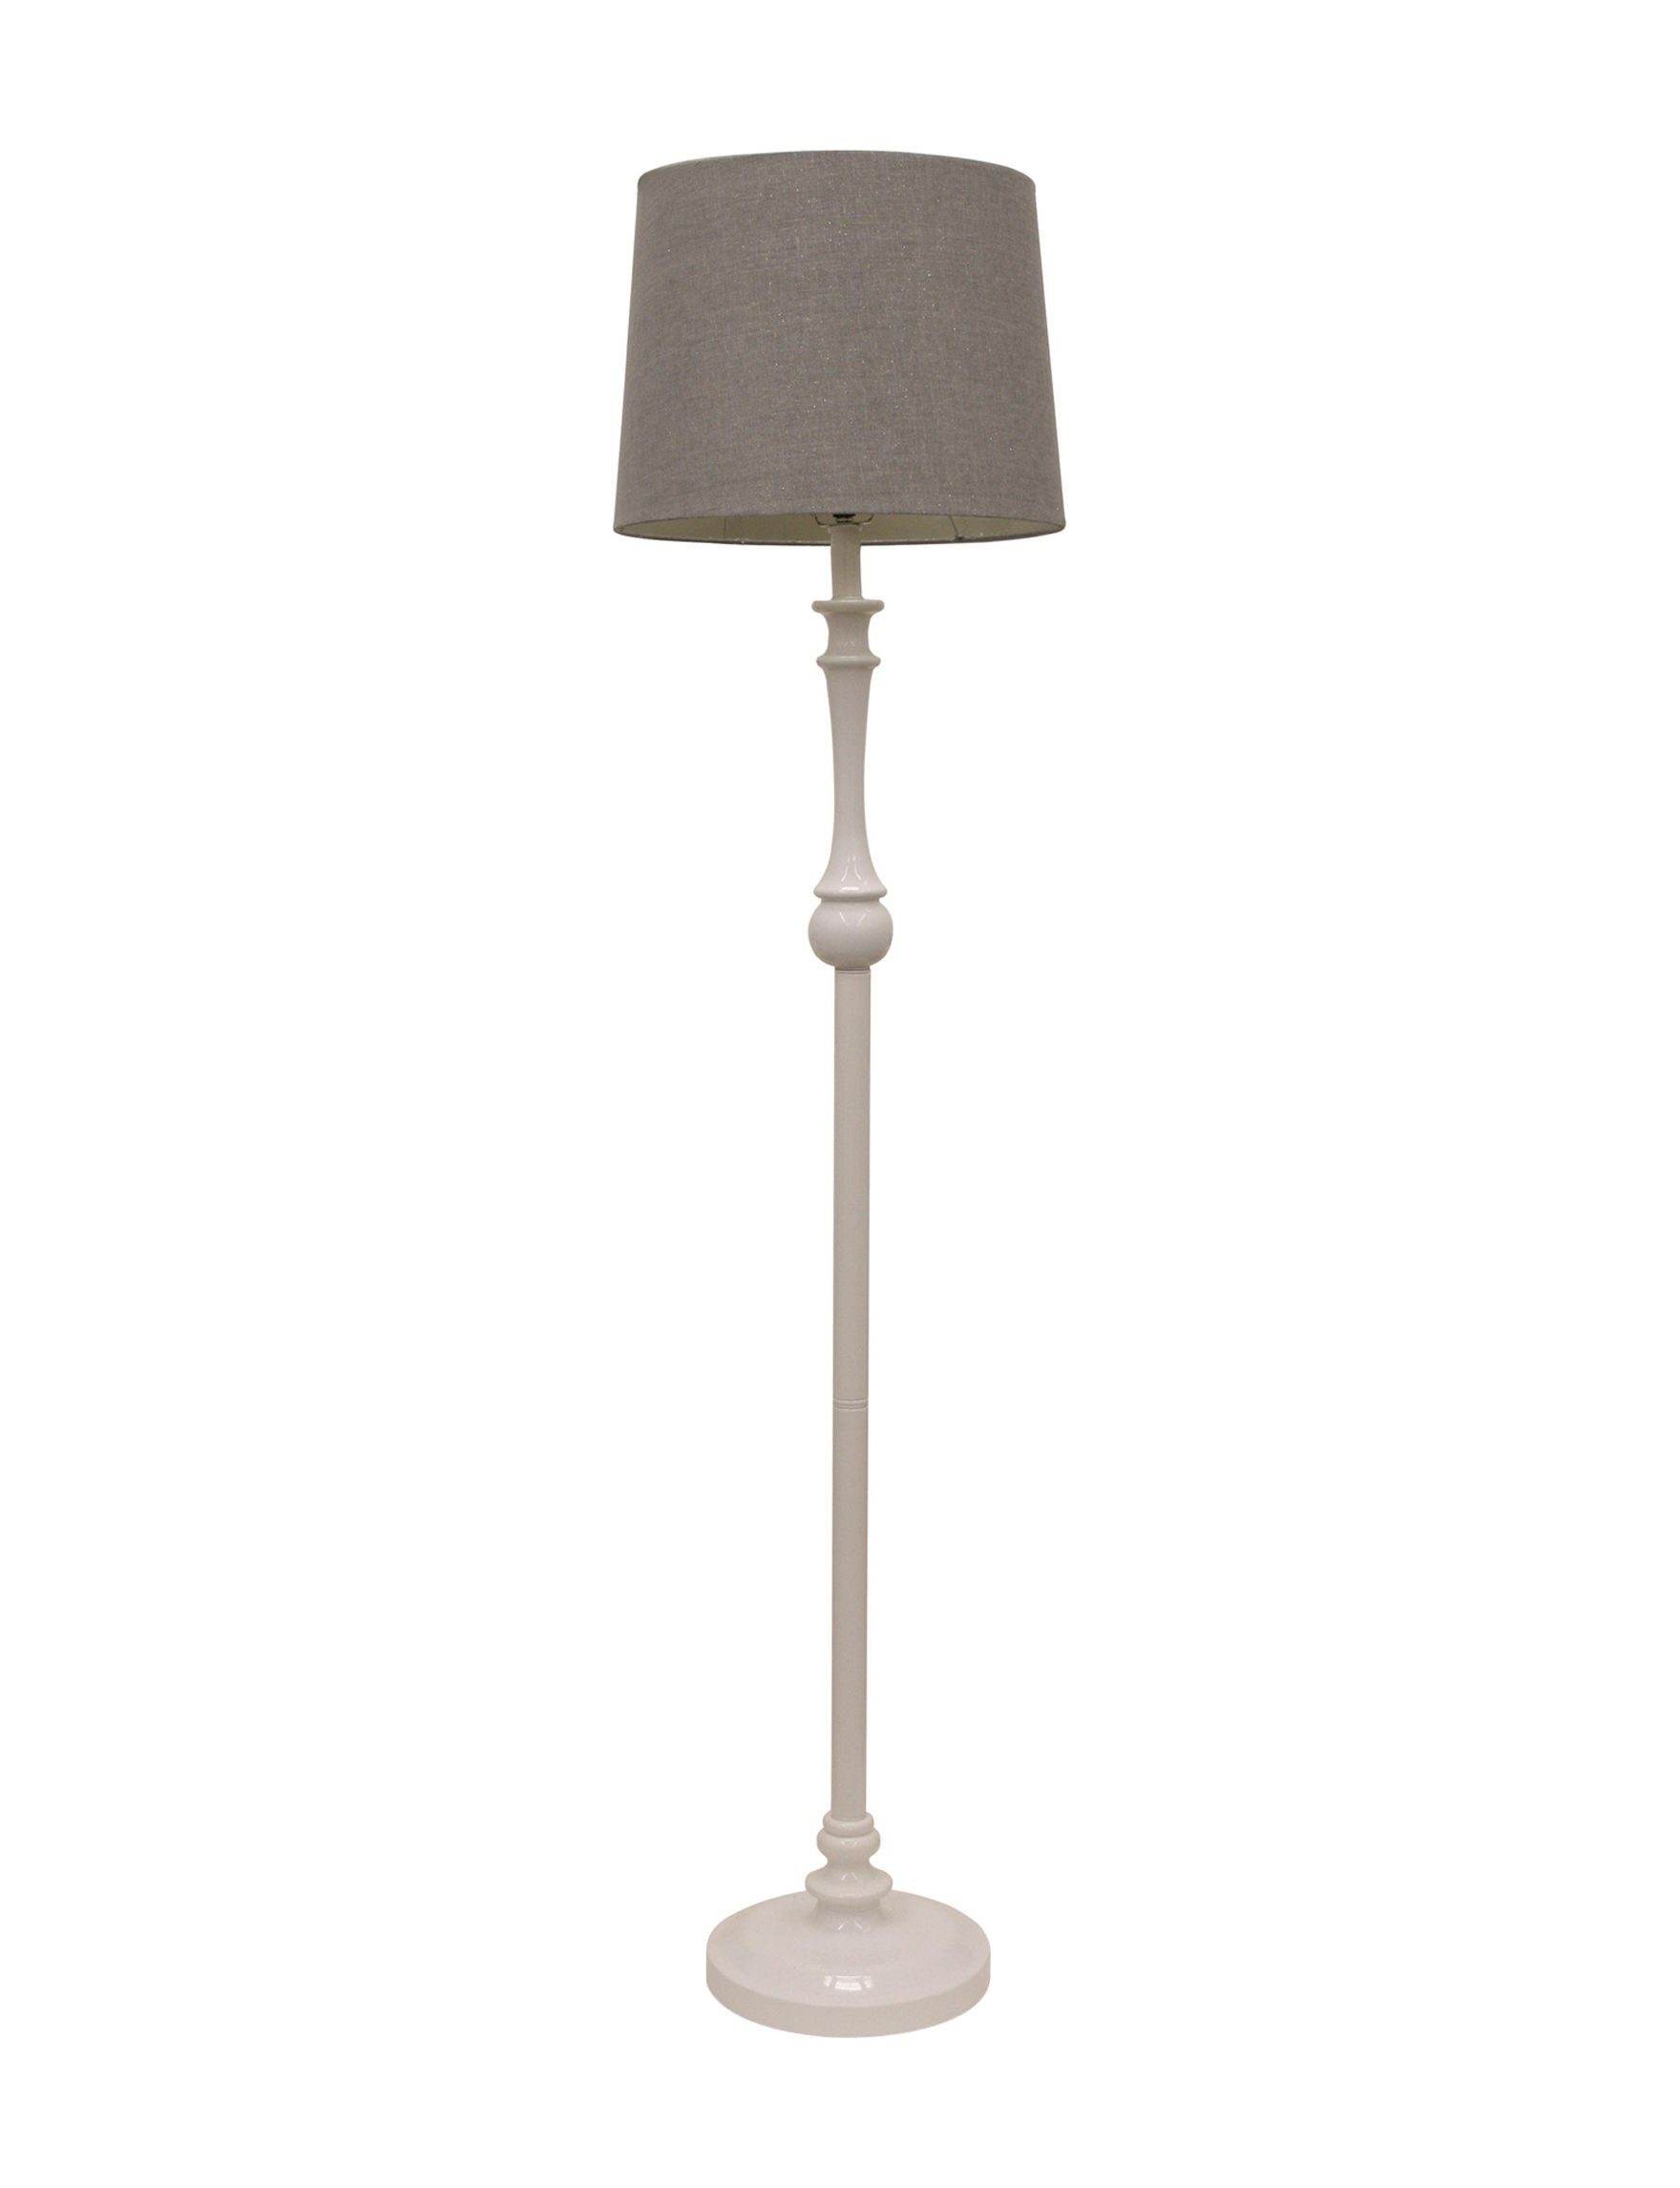 Decor Therapy White Floor Lamps Lighting & Lamps